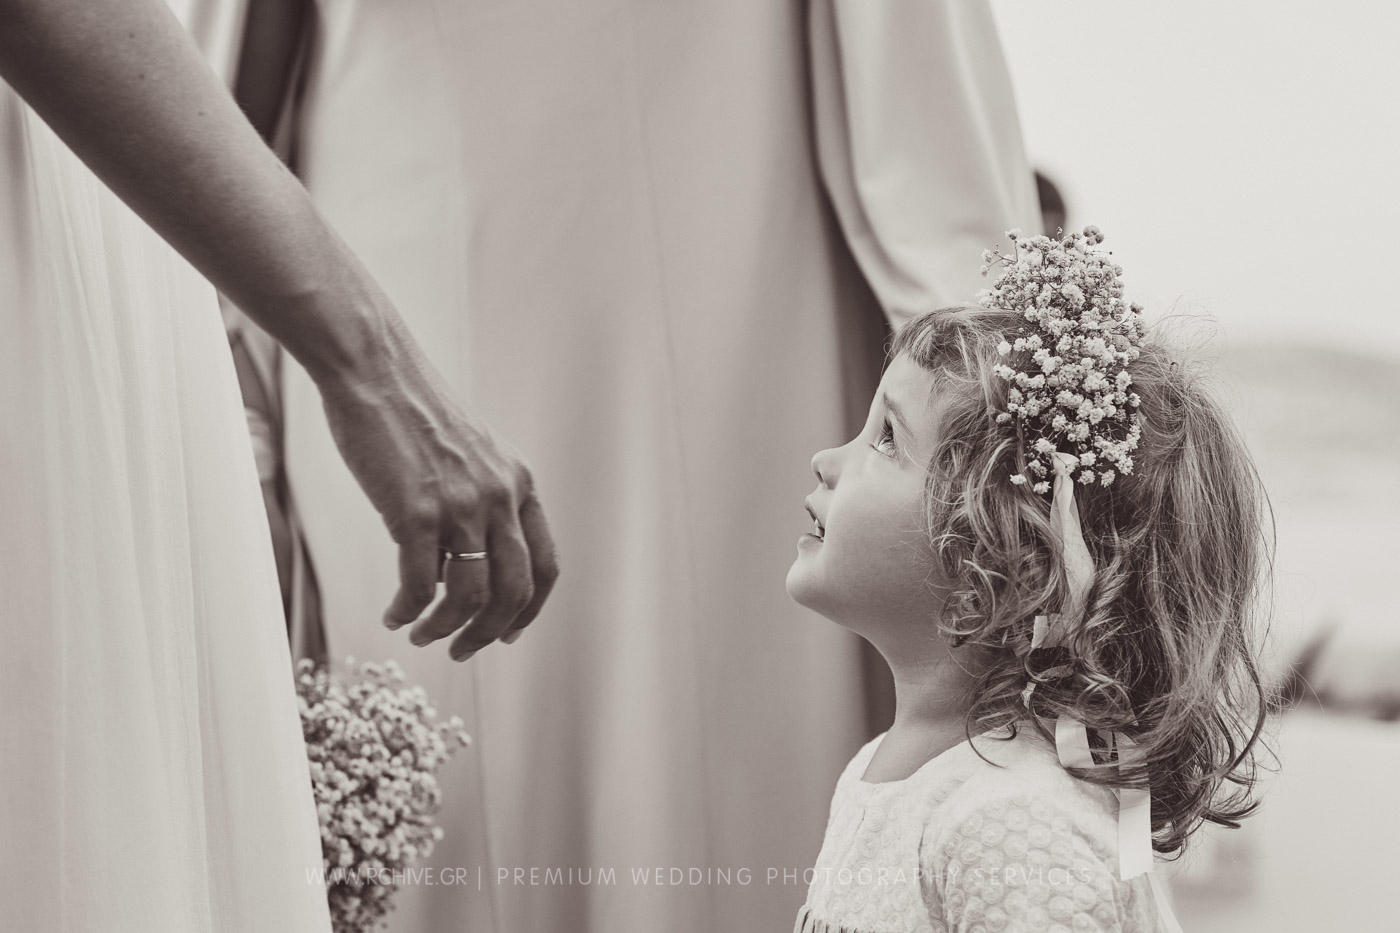 flower girl wedding photographer